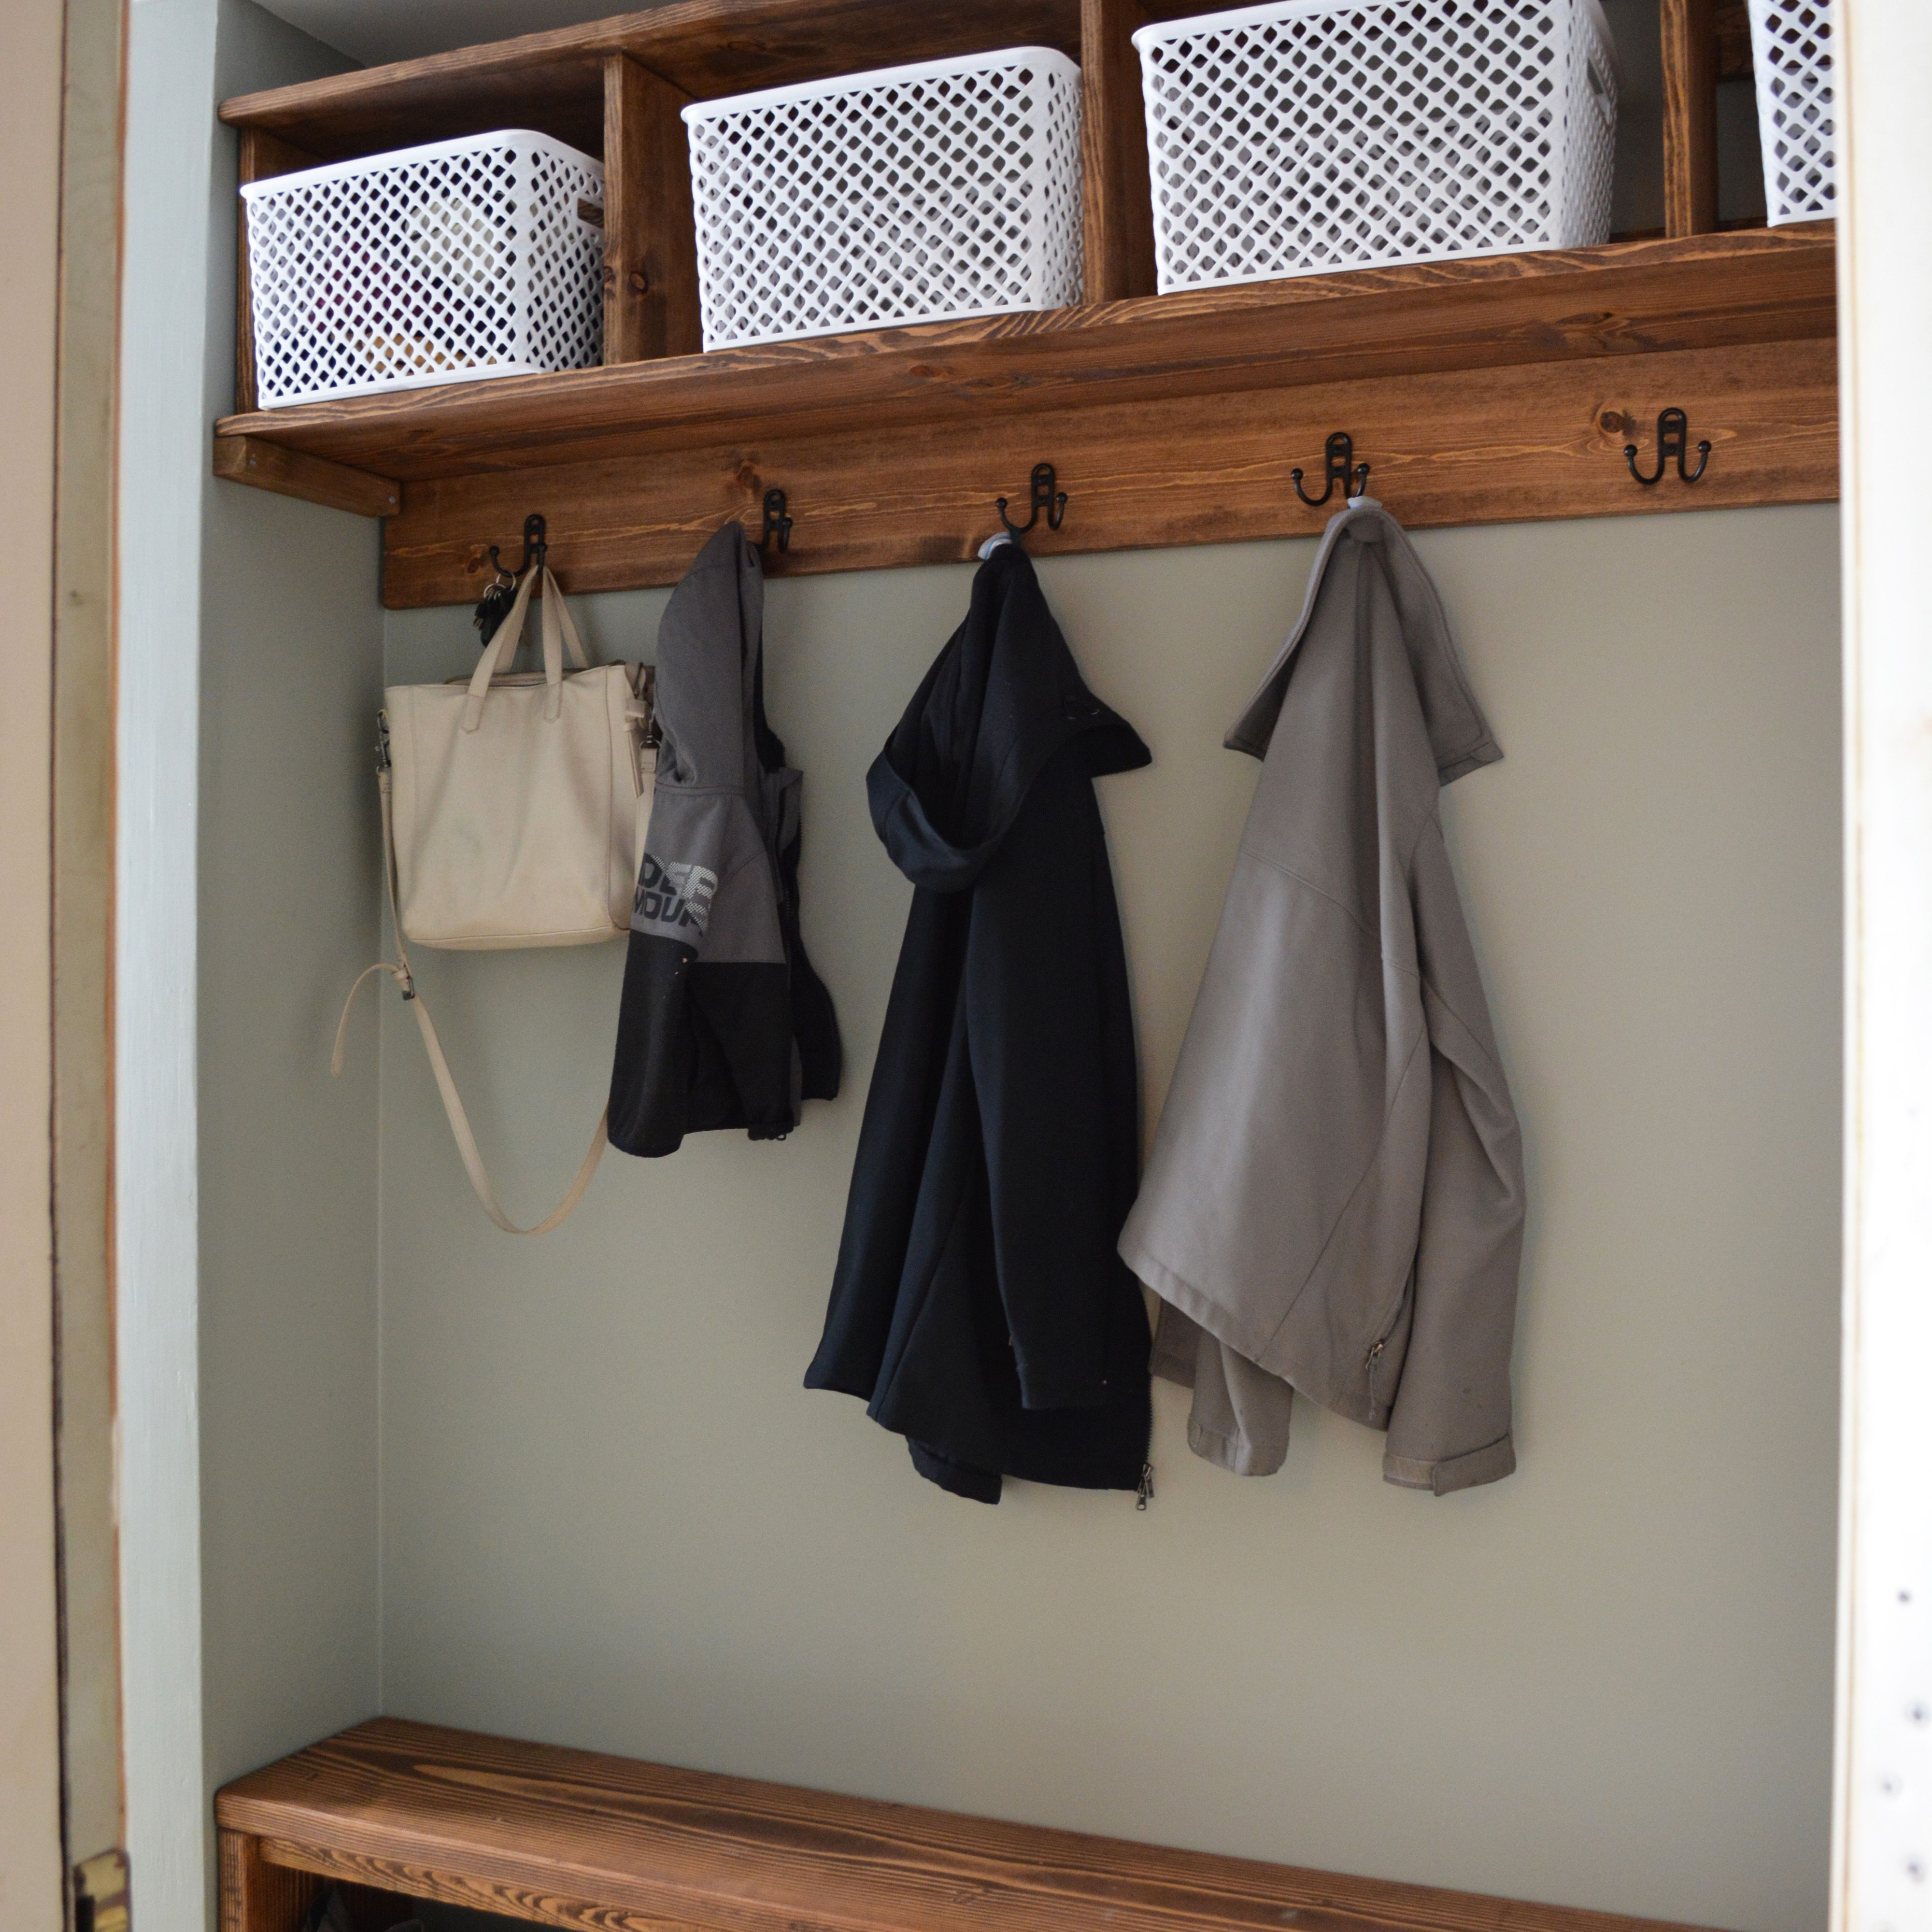 A mudroom with shoe storage on the floor